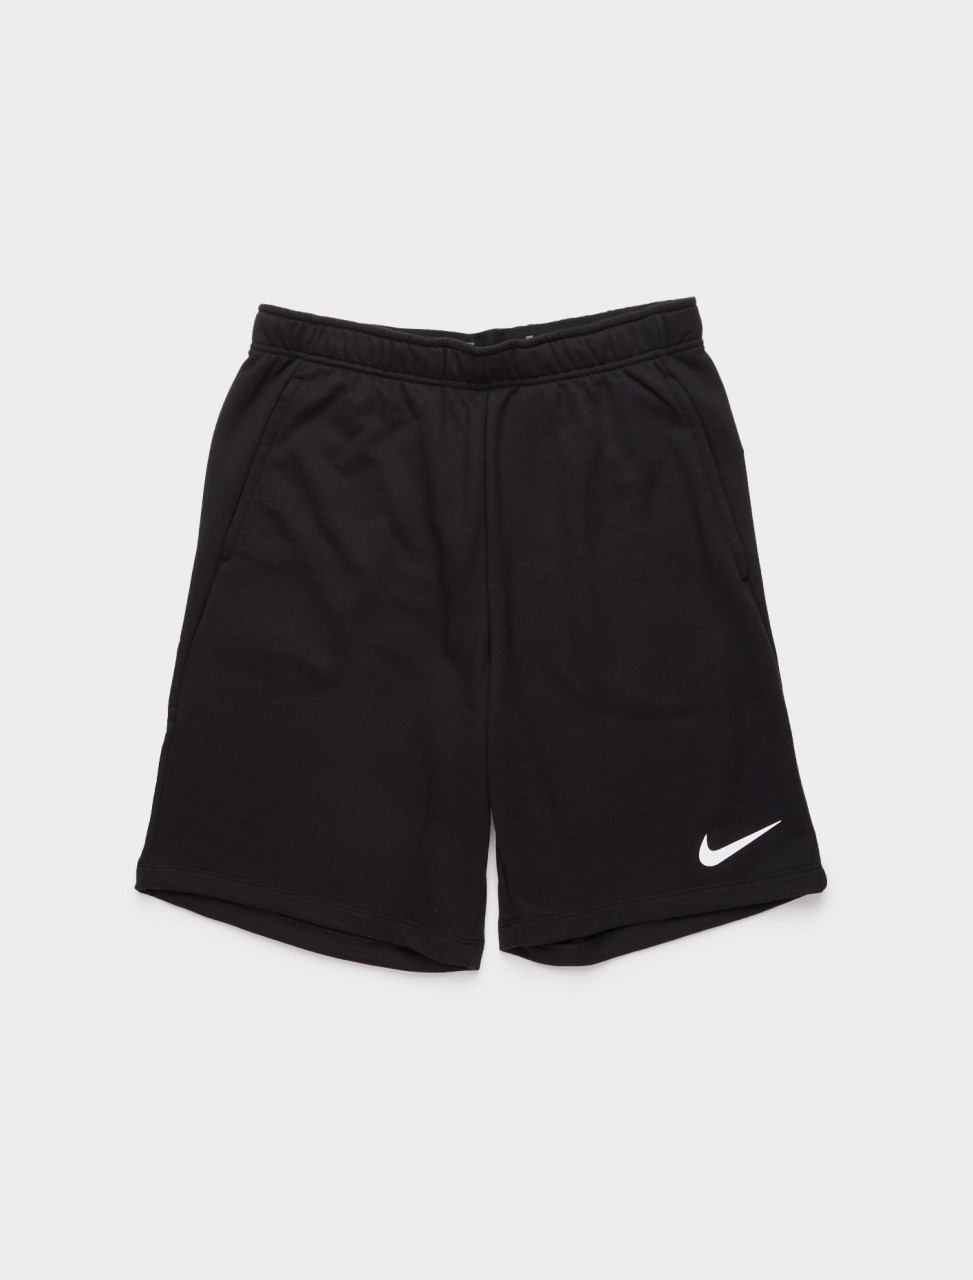 149-CJ4332-010 NIKE DRI-FIT FLEECE TRAINING SHORTS